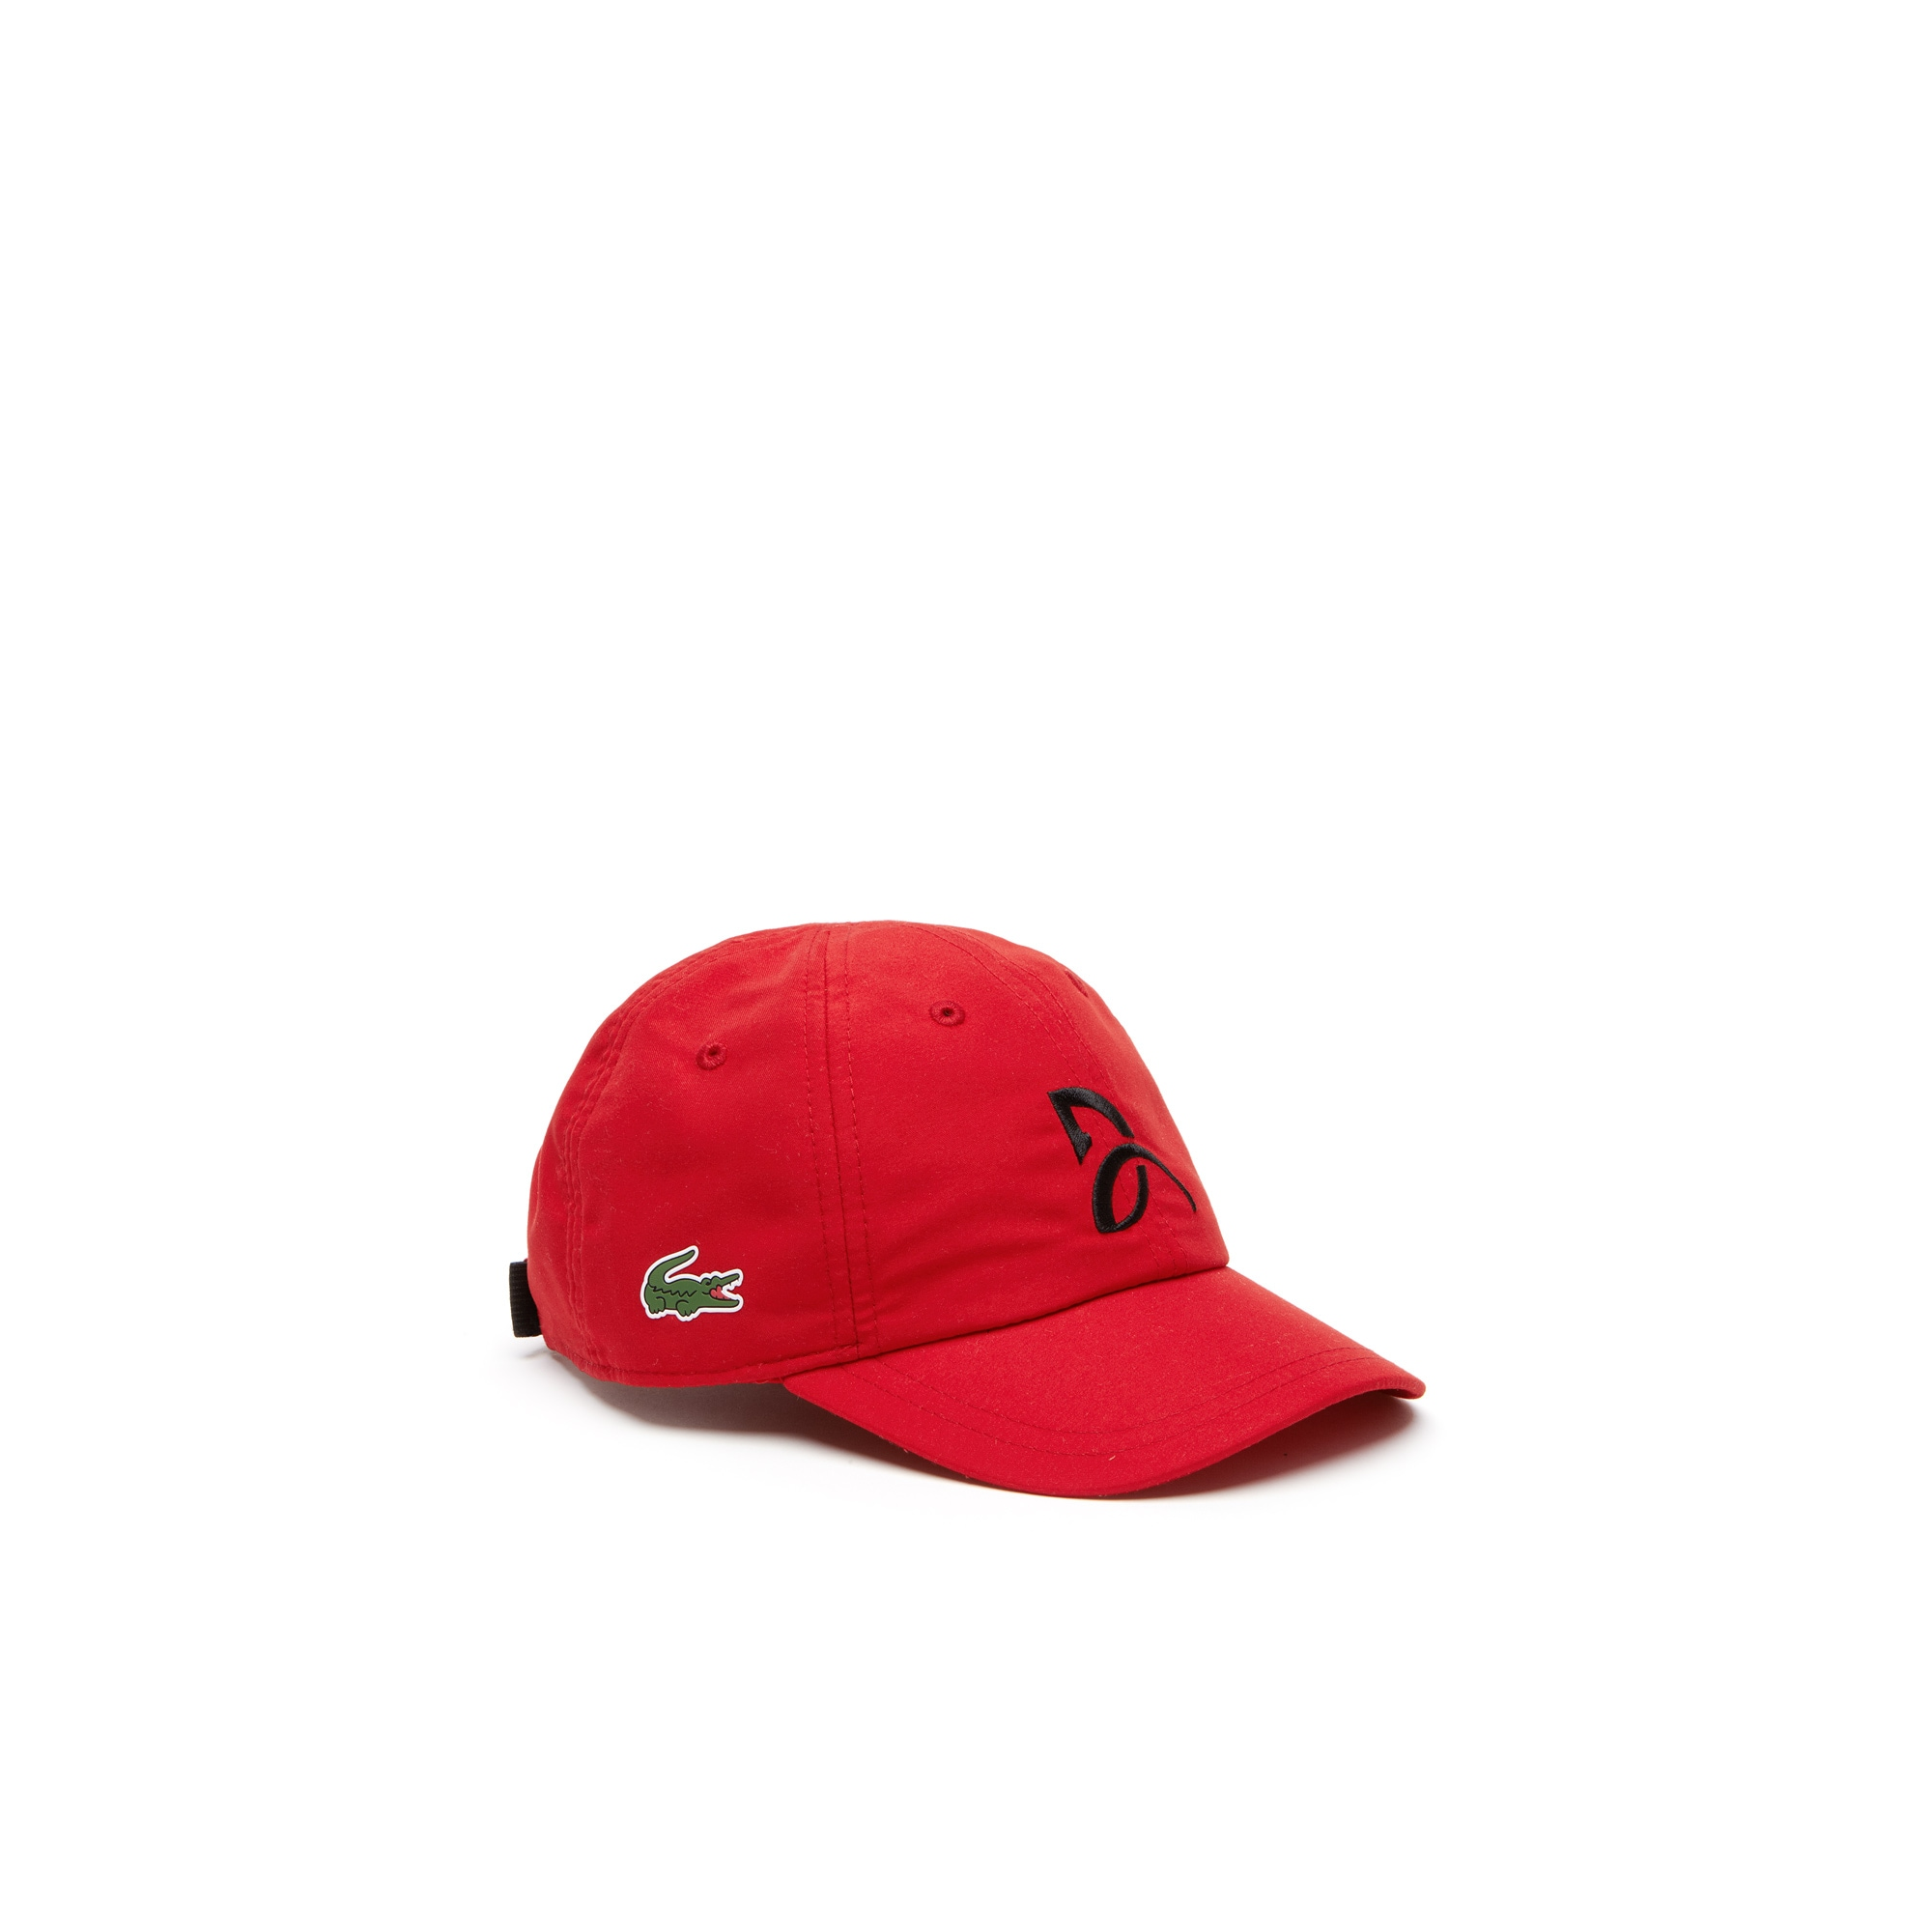 Casquette Garçon Lacoste SPORT COLLECTION NOVAK DJOKOVIC SUPPORT WITH STYLE en microfibre